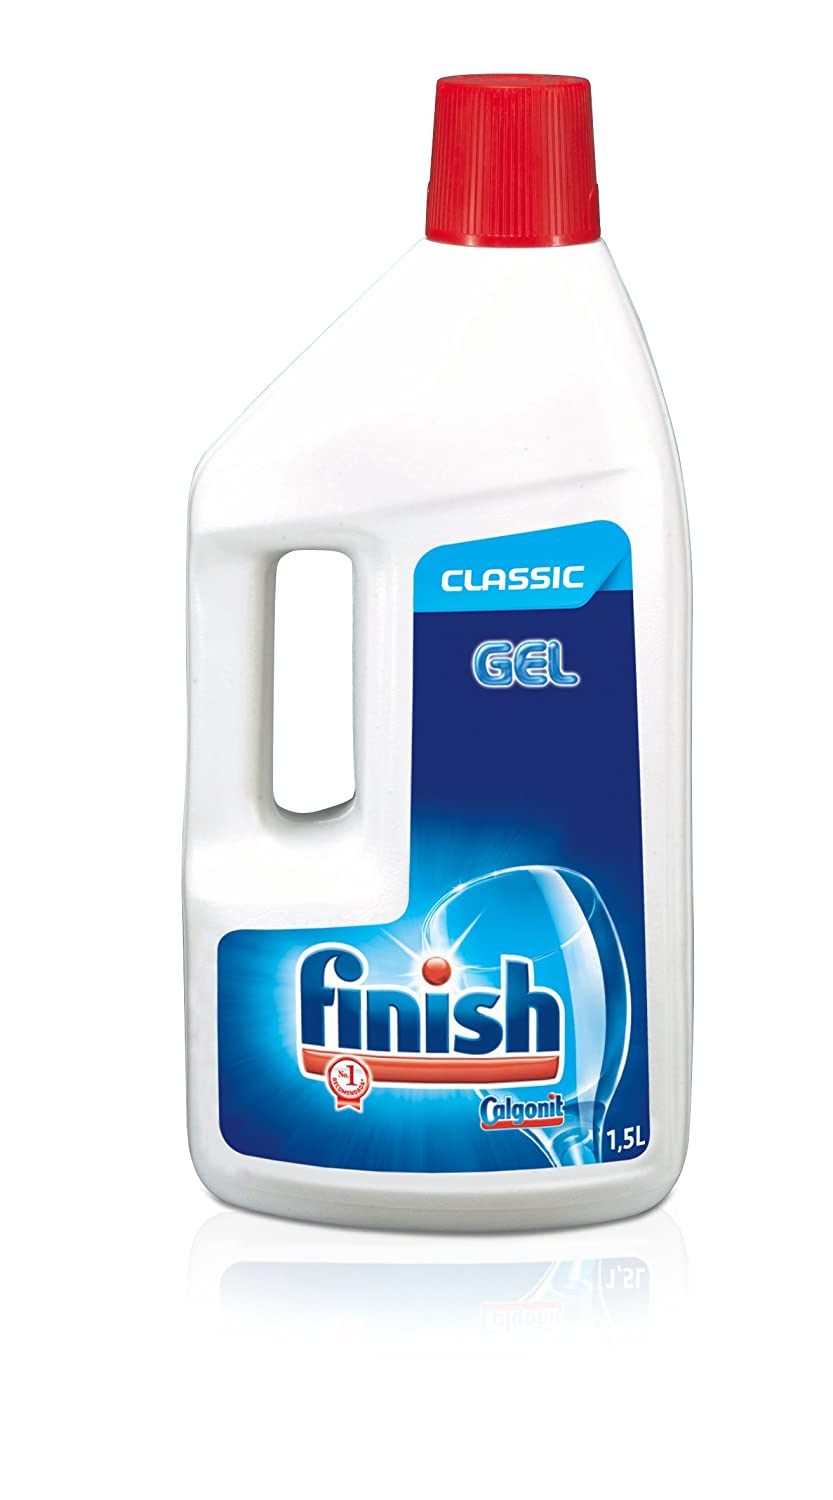 Finish Original Lavavajillas Gel Regular - 1,5 L: Amazon.es: Tu ...